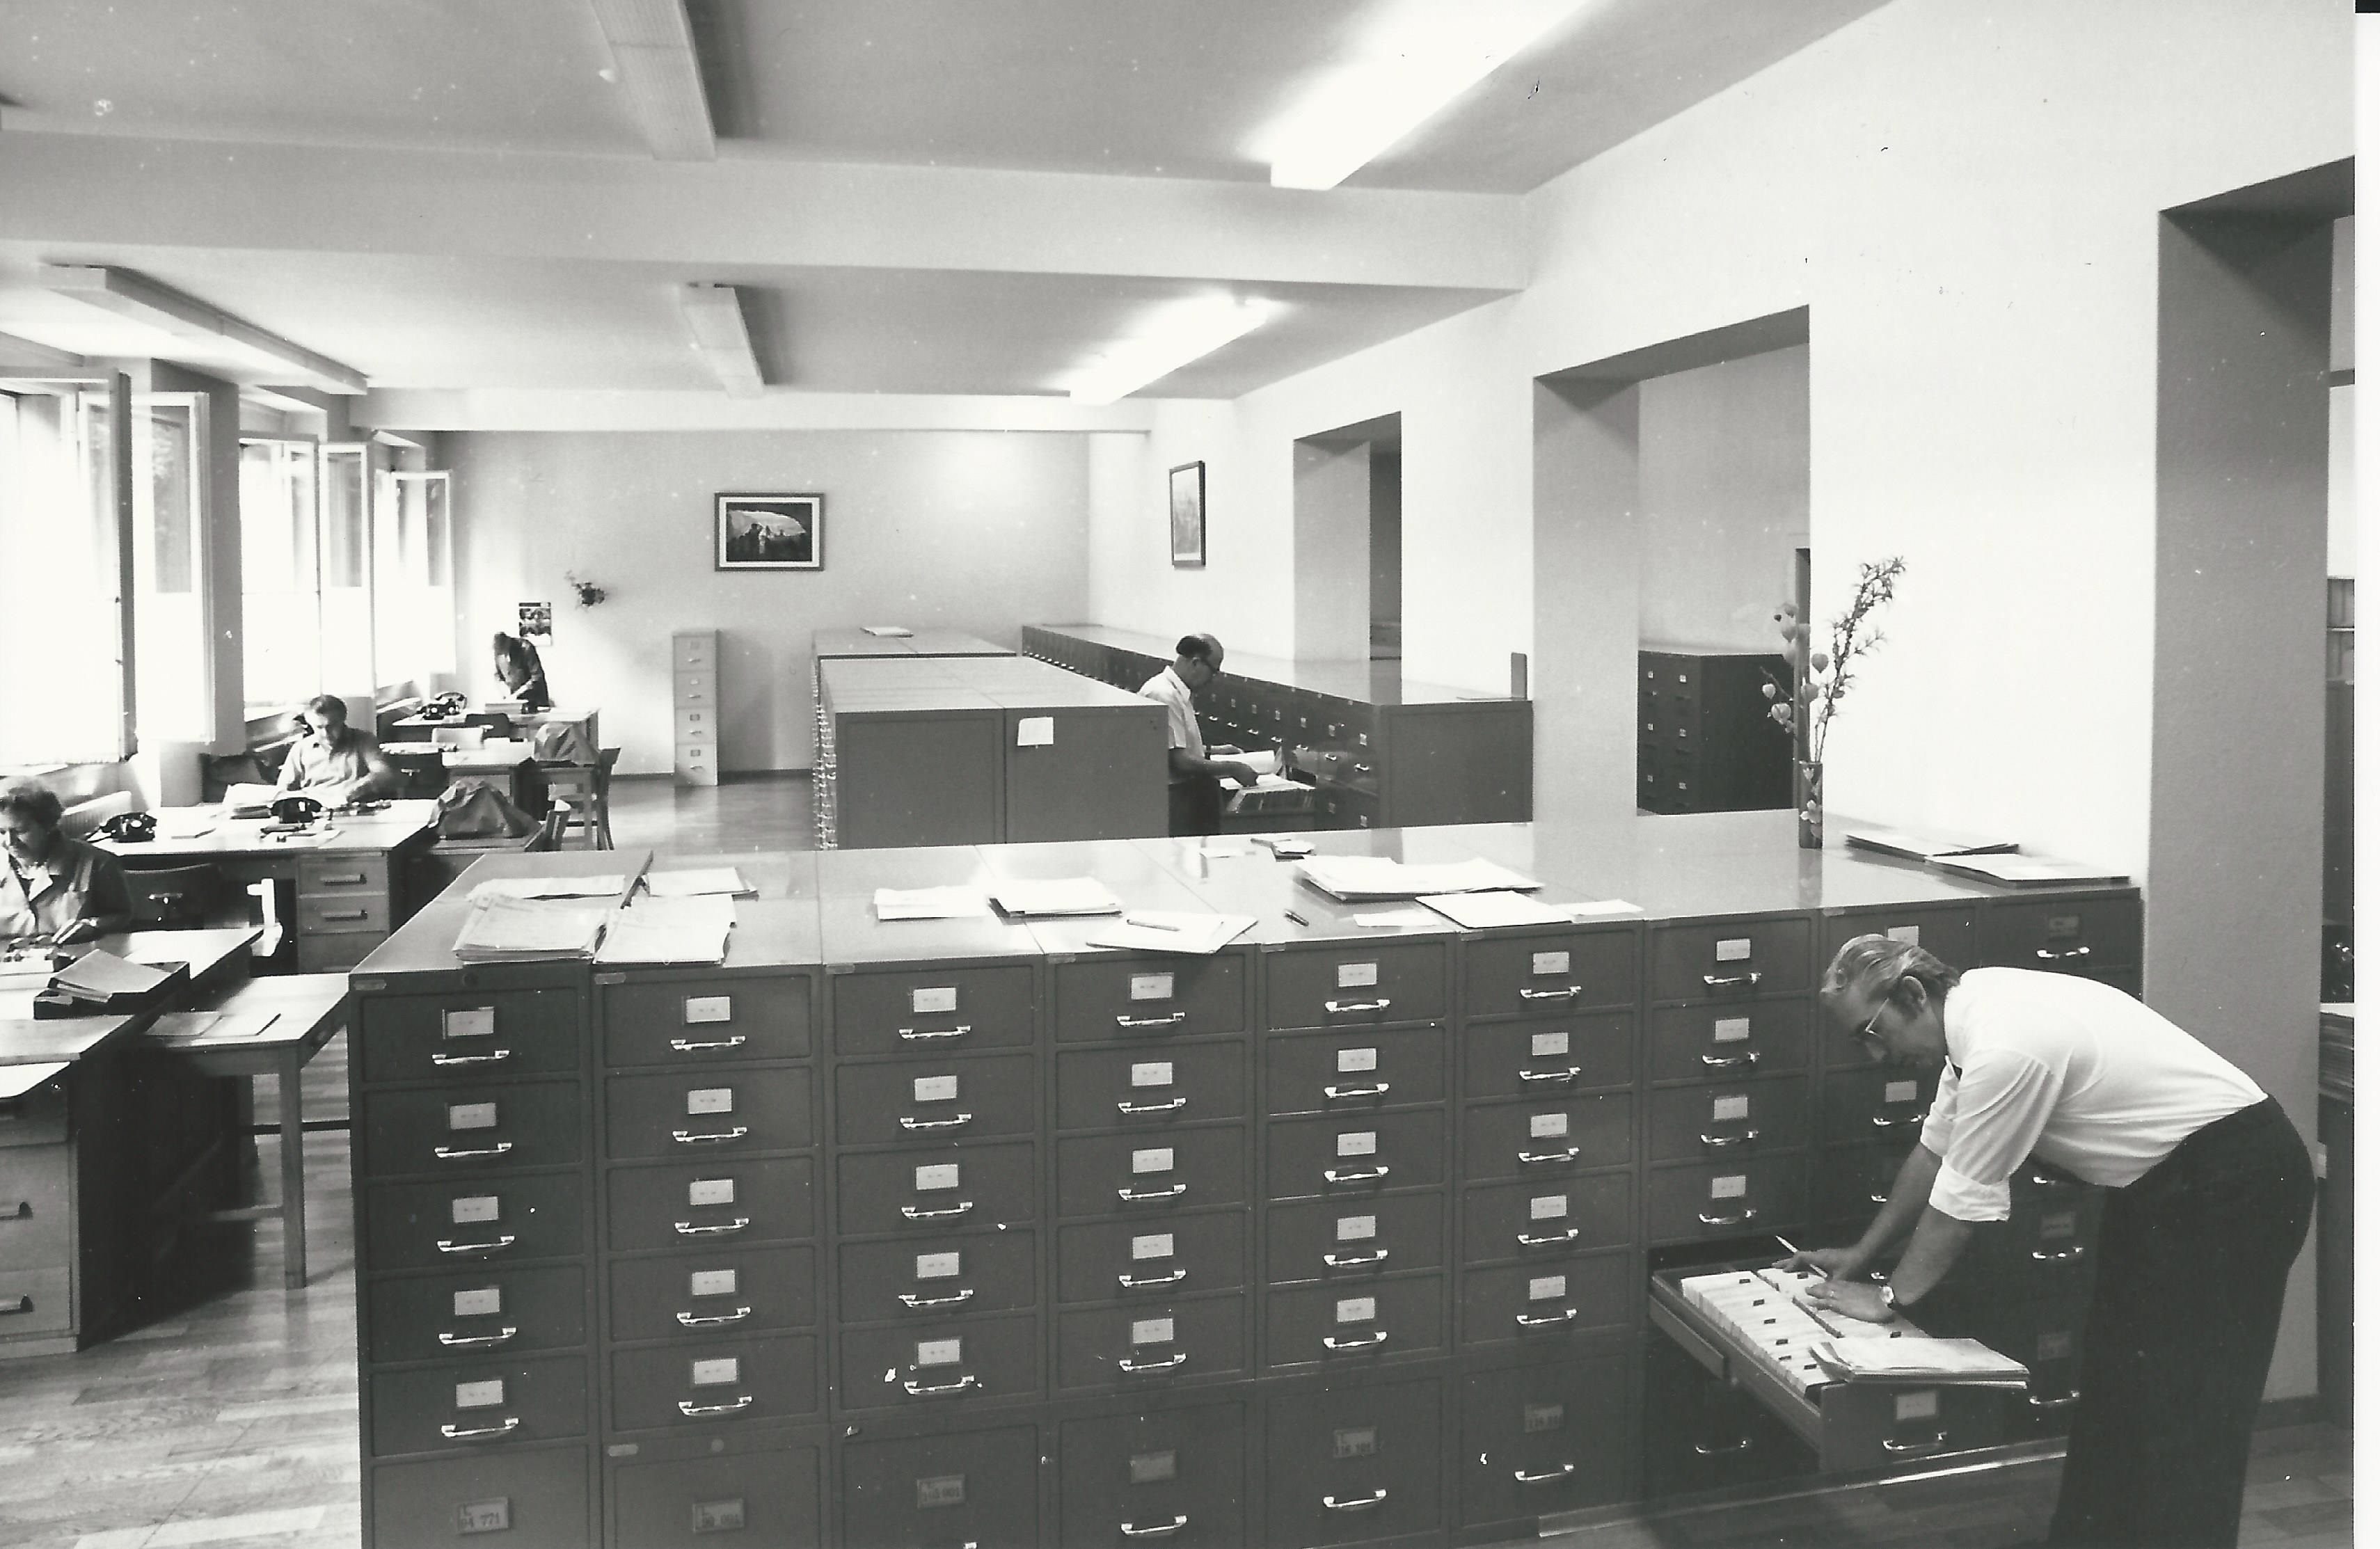 Registration service at the Federal Tax Administration, Bern, 1974